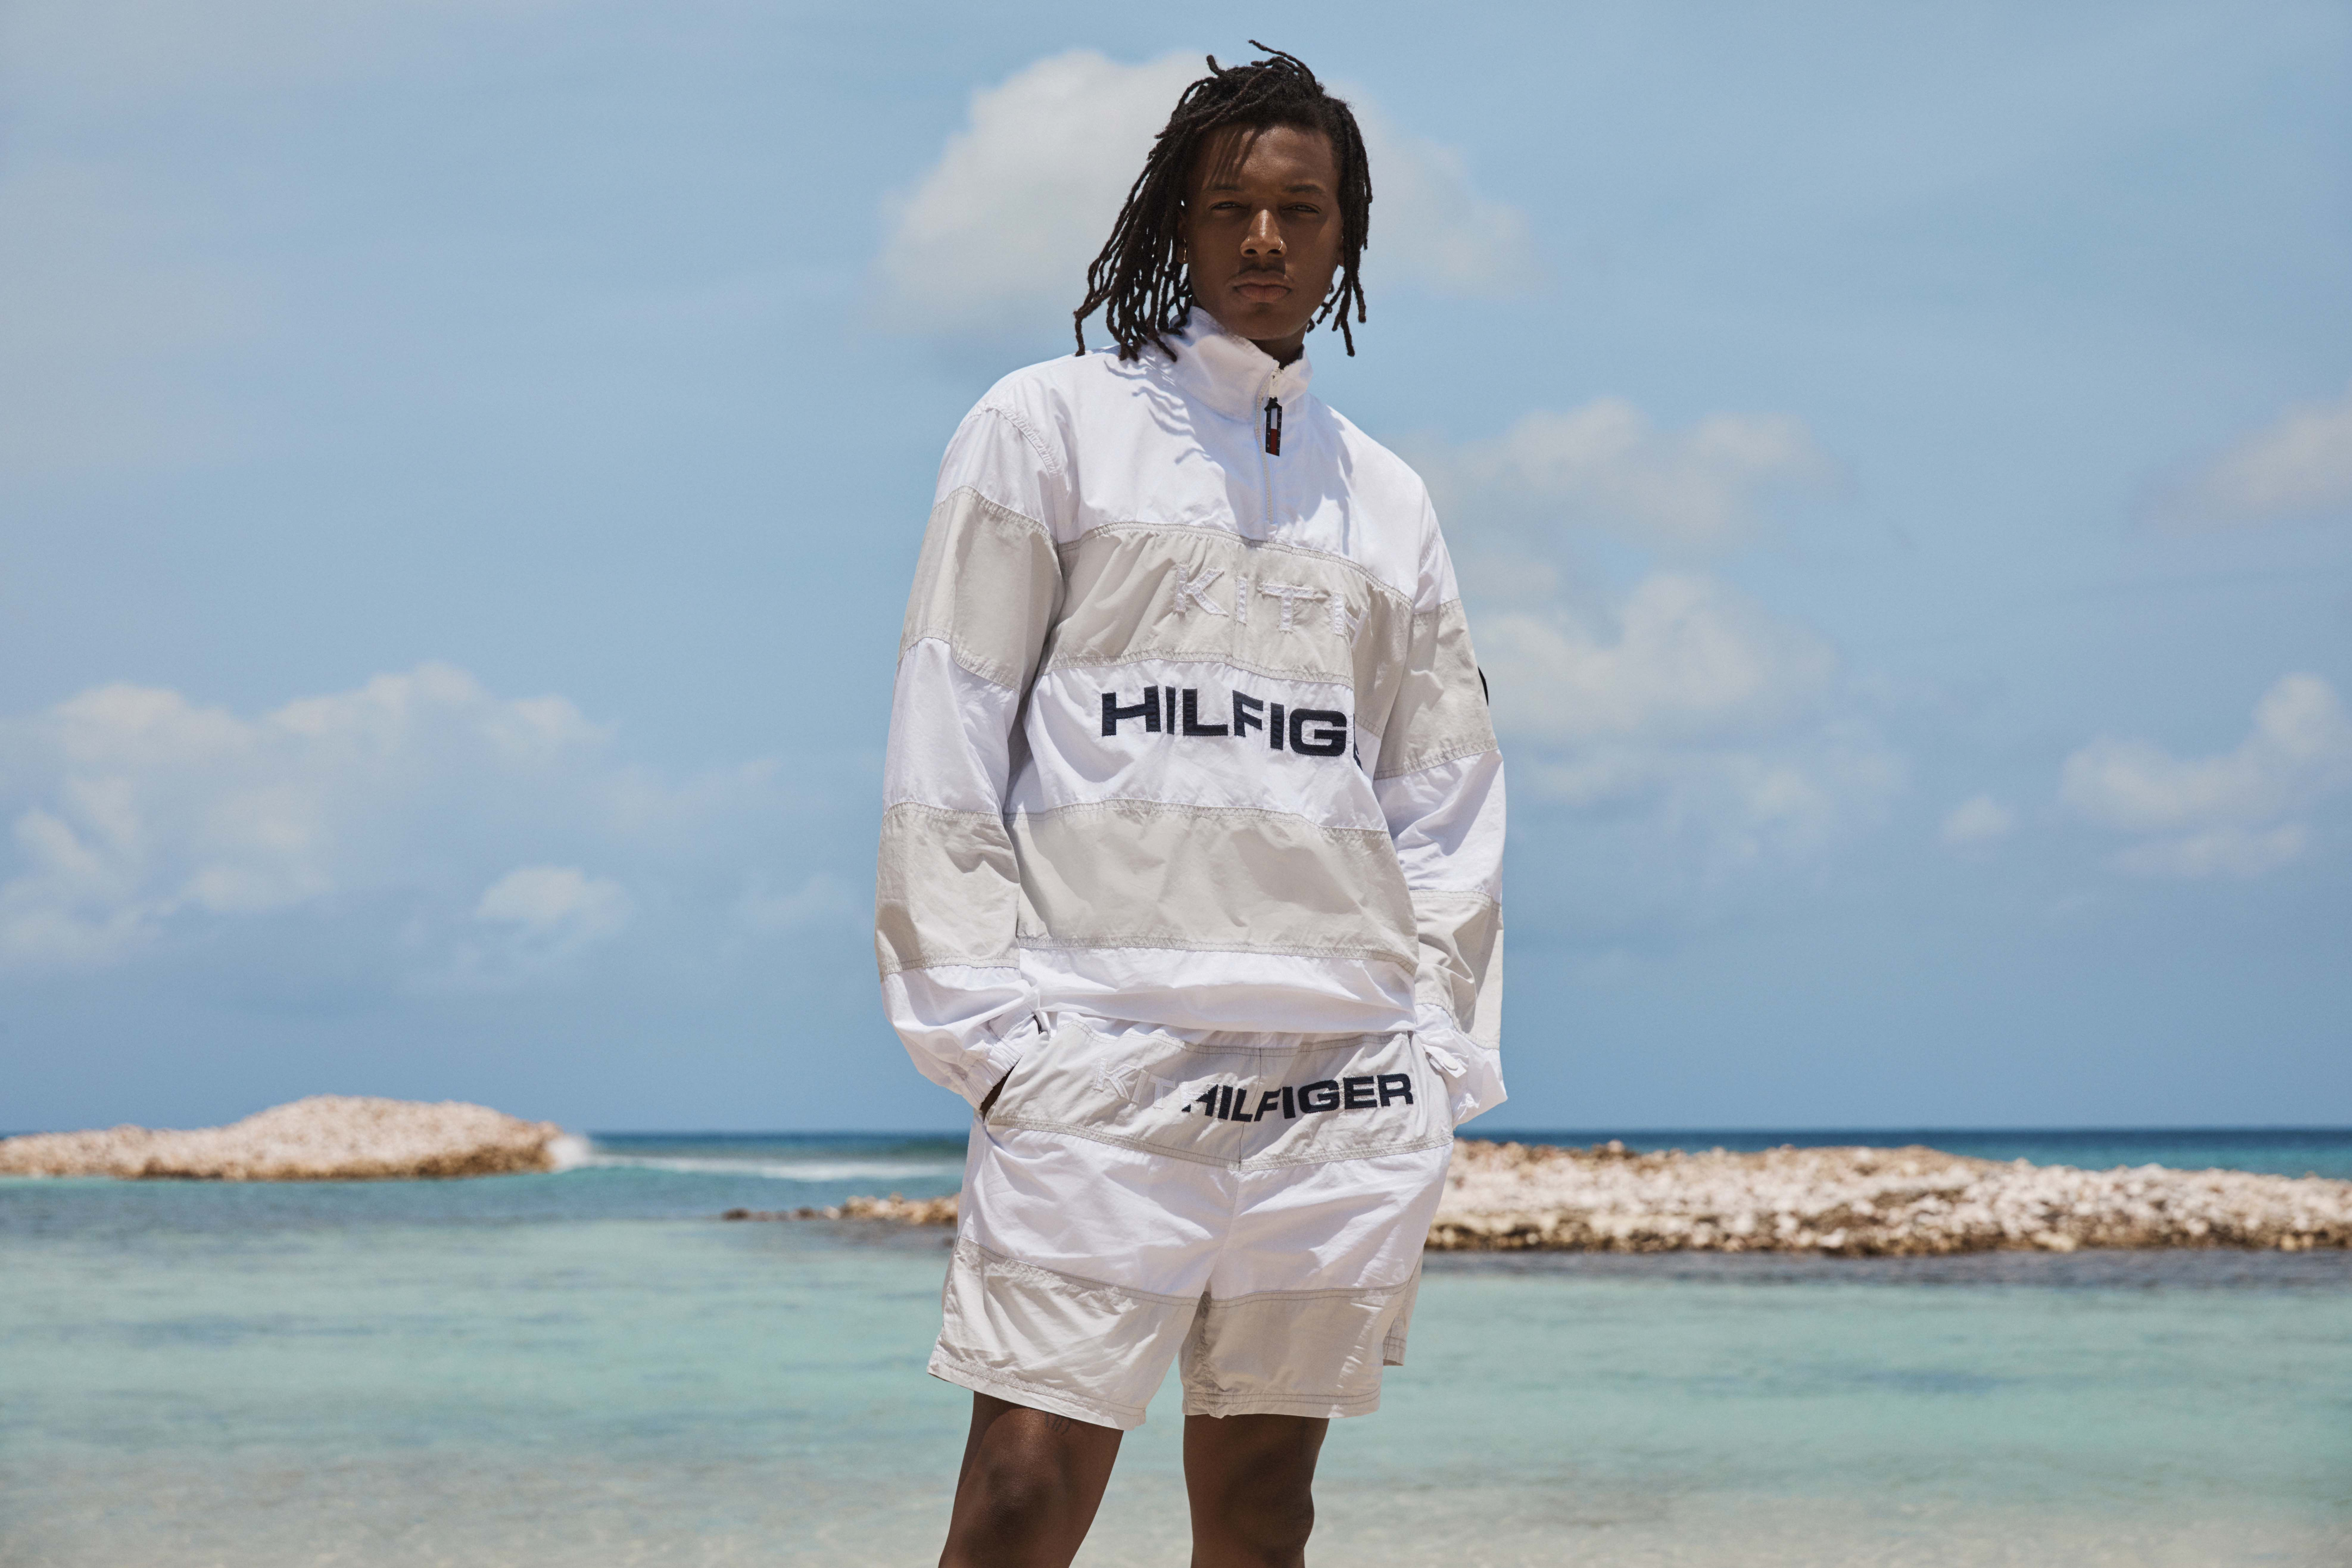 Kith and Tommy Hilfiger's New Collab Is Perfect for Any Summer Adventure